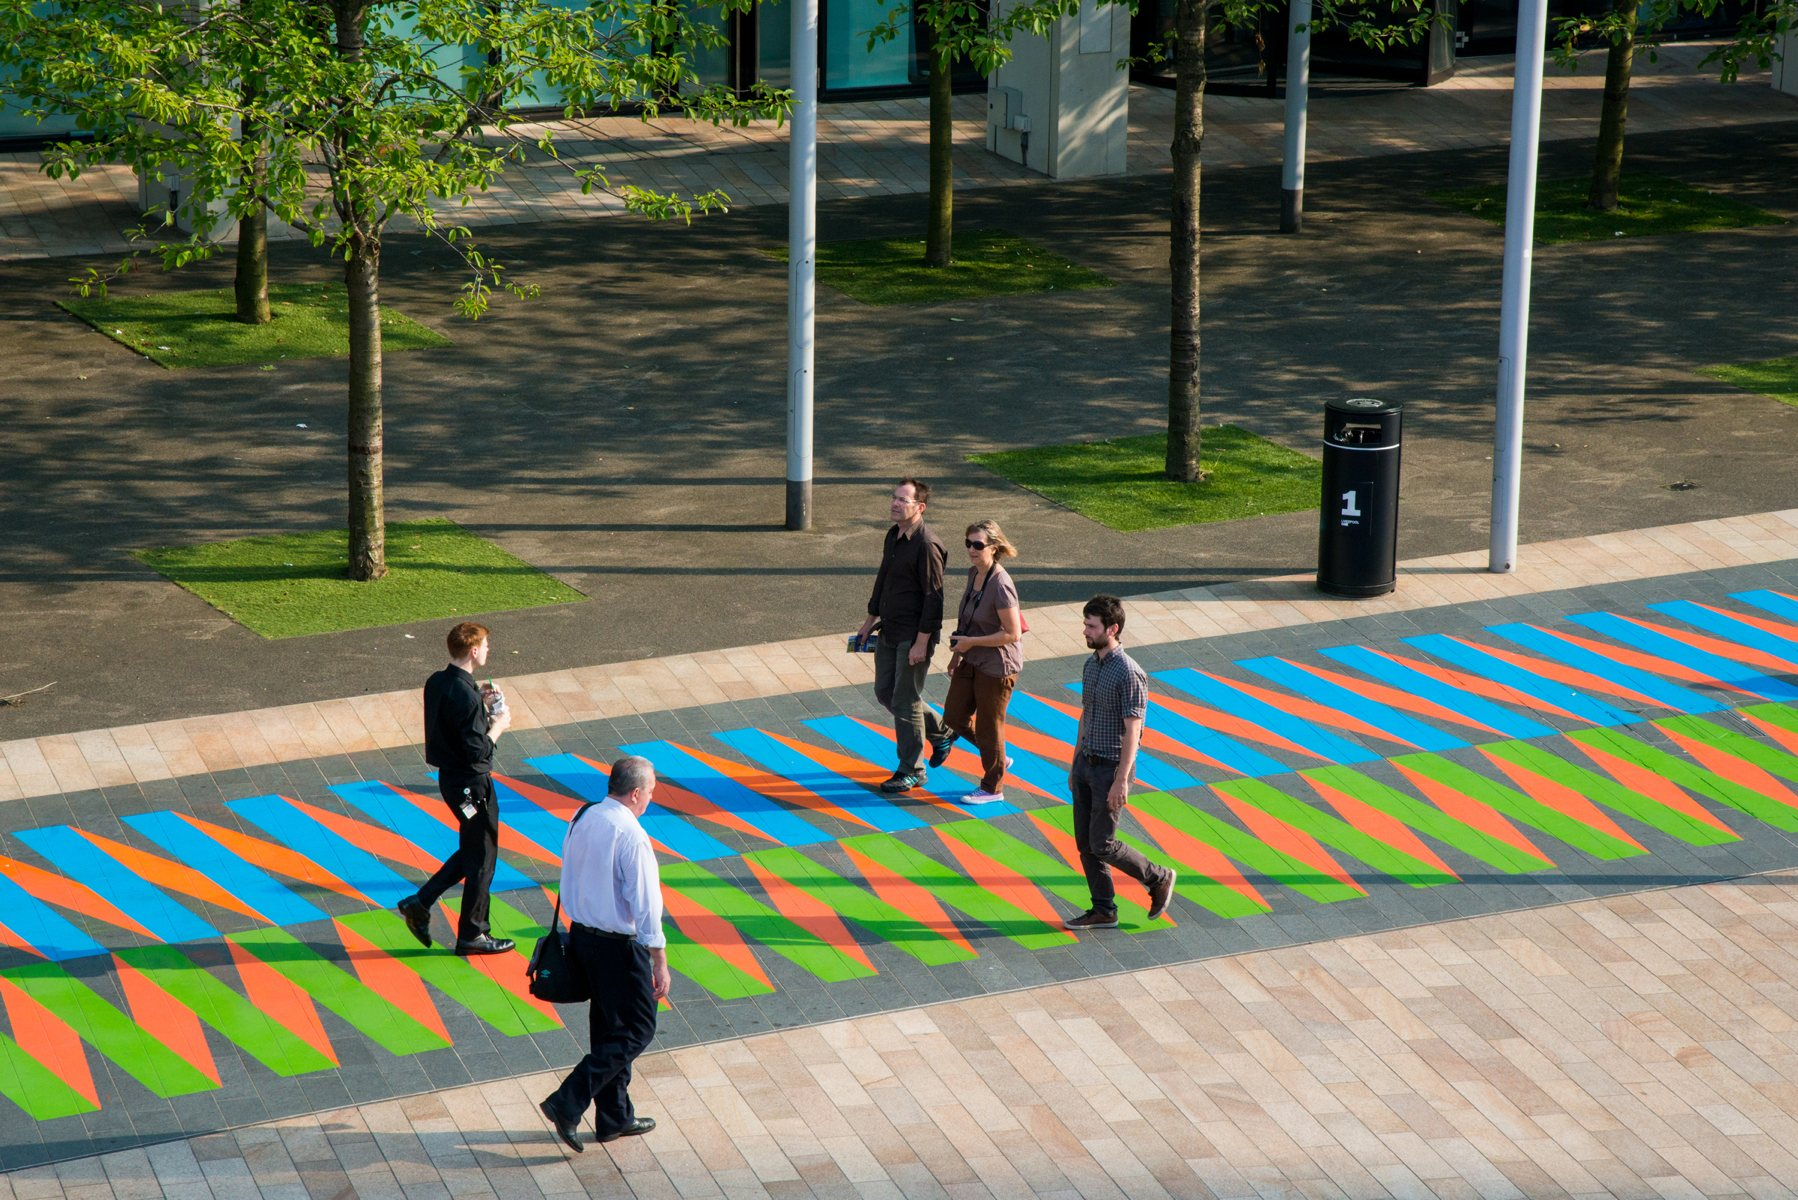 Carlos Cruz-Diez, Couleur Additive Liverpool ONE, Liverpool. Paris, 2014. Commissioned by Liverpool Biennial, 2014. Photograph by Mark McNulty.